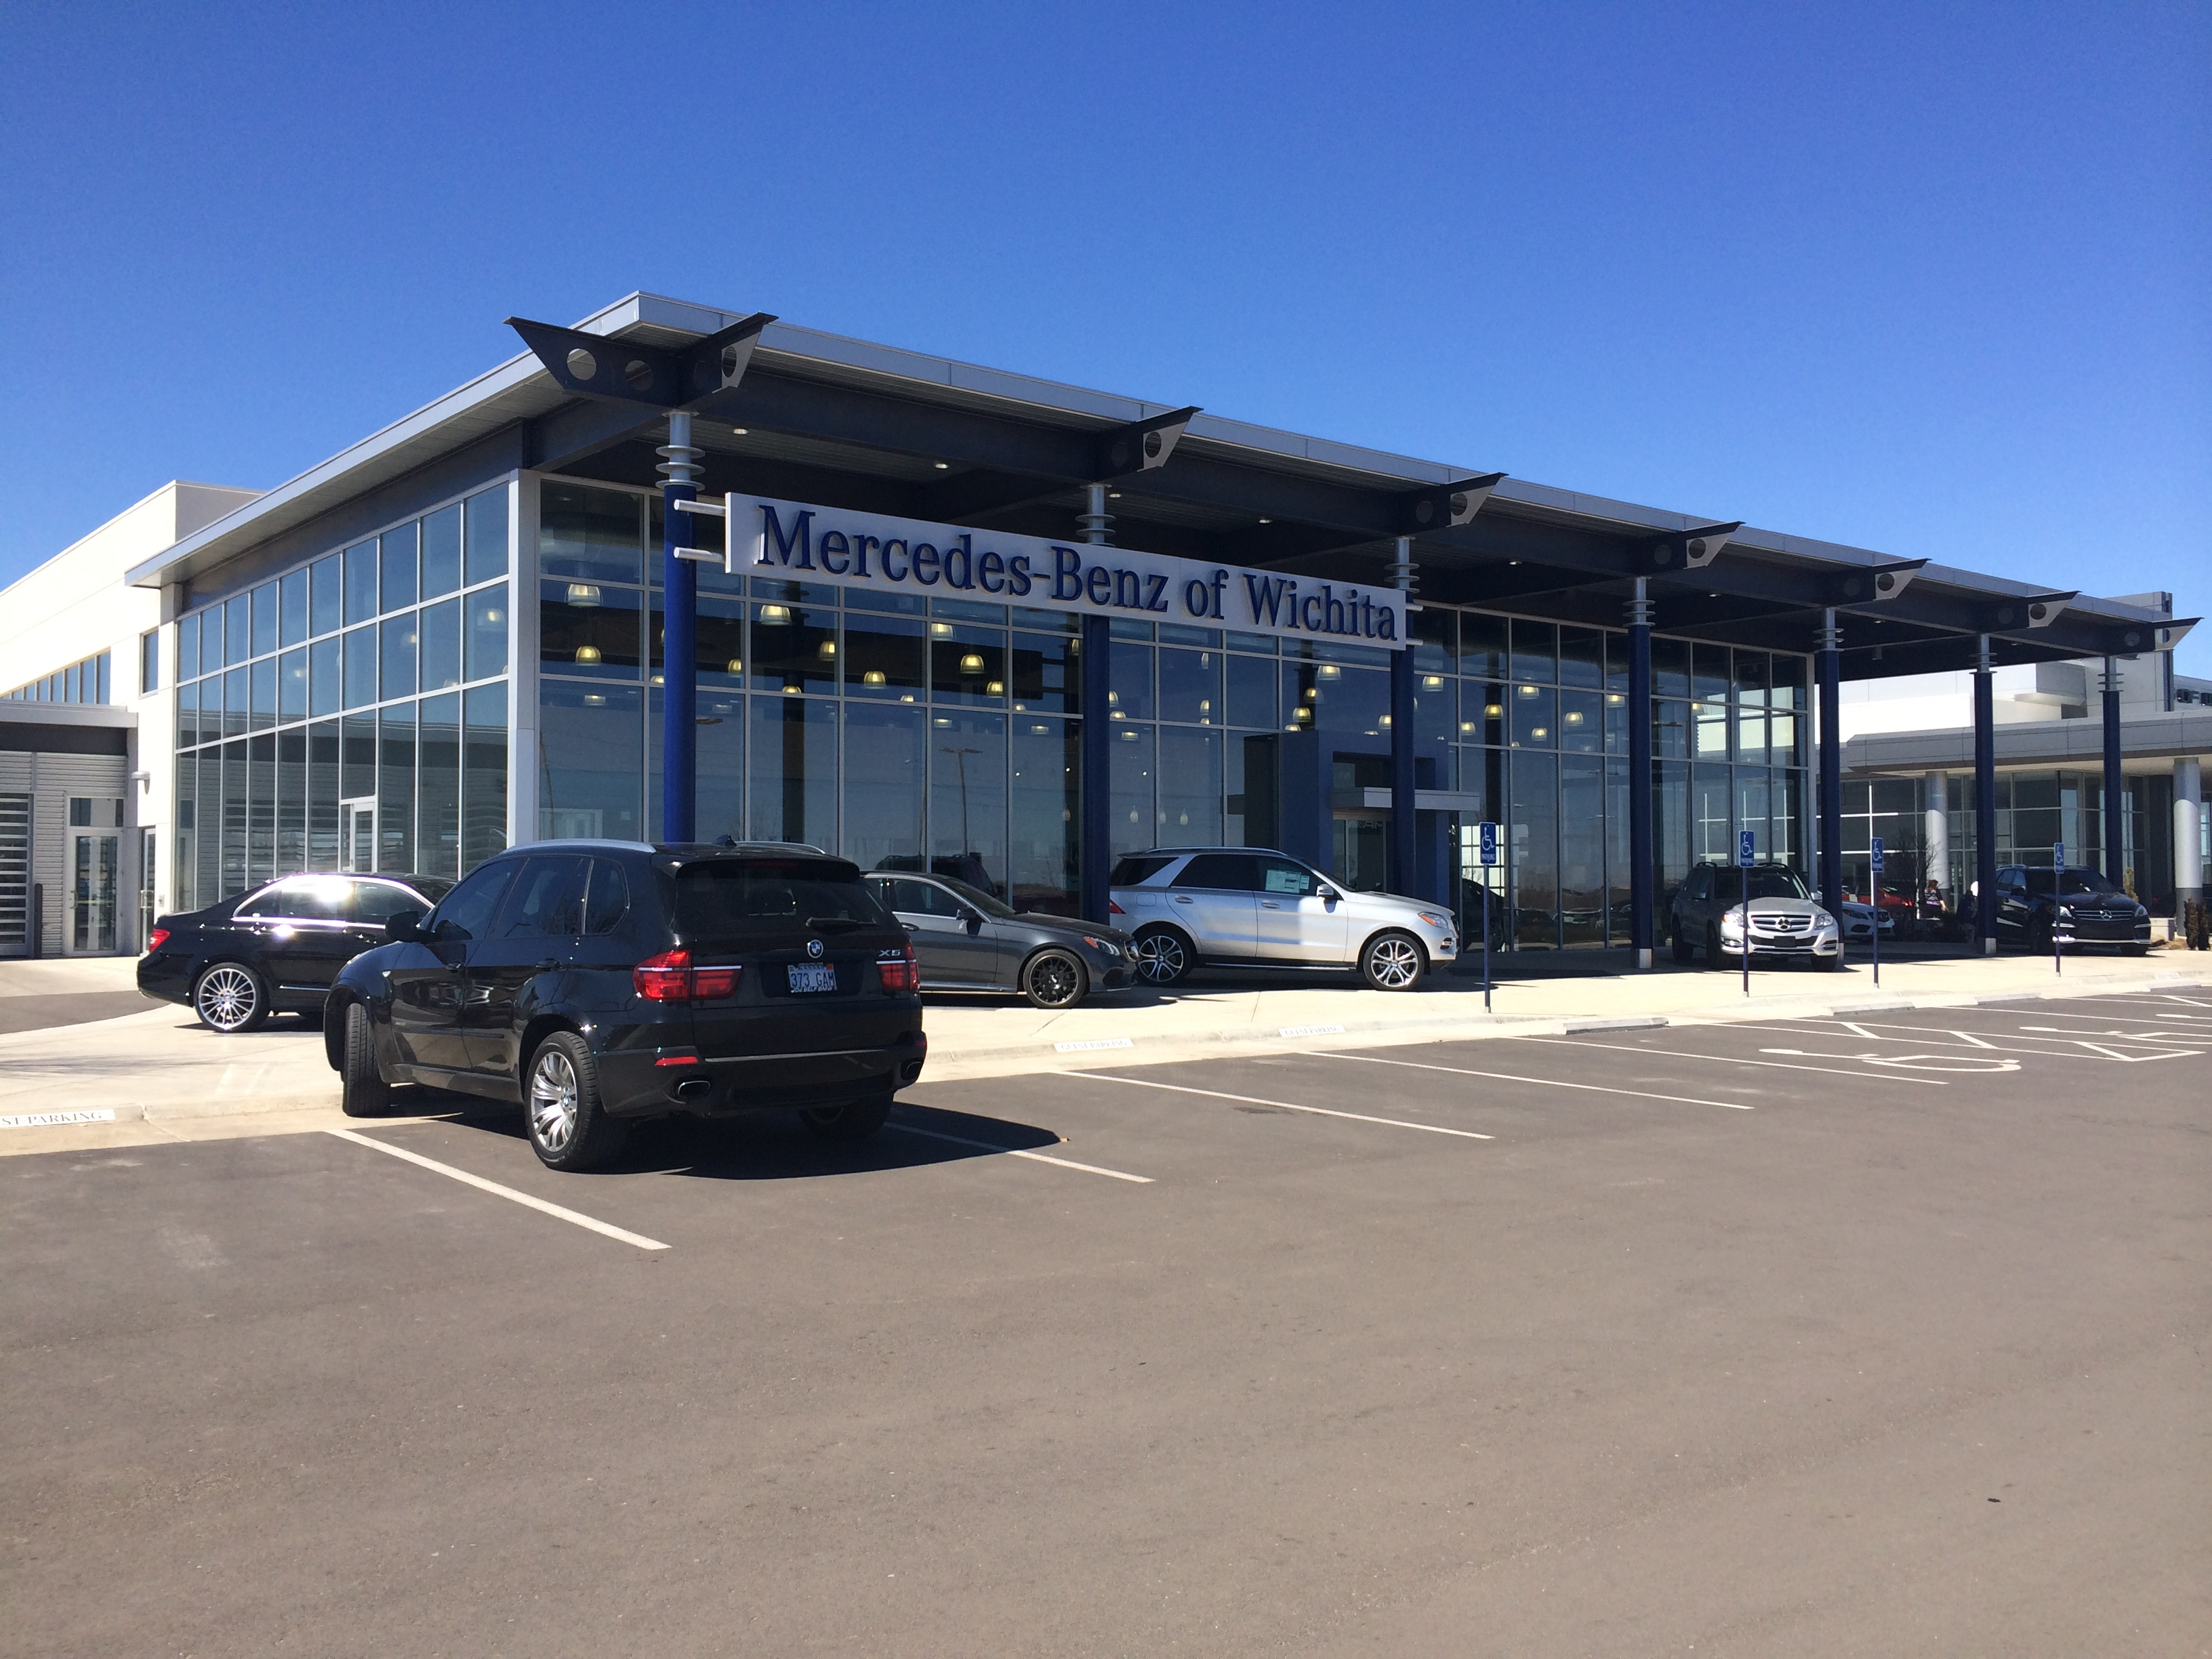 Mercedes benz dealership kansas city mo used cars autos post for Mercedes benz dealer northern blvd